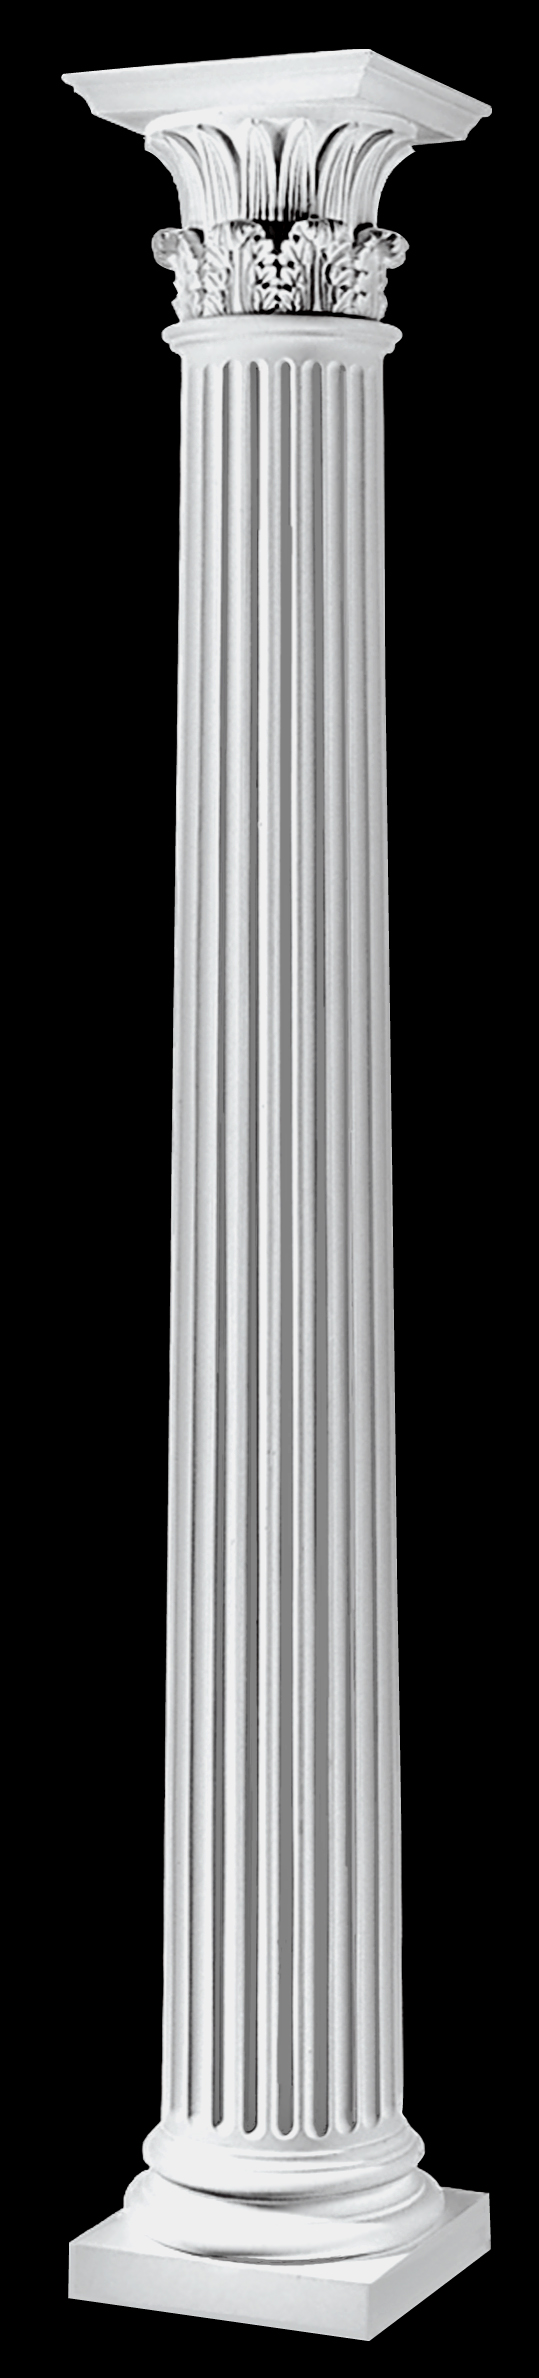 Fluted architectural wood greek corinthian columns for Architectural wood columns